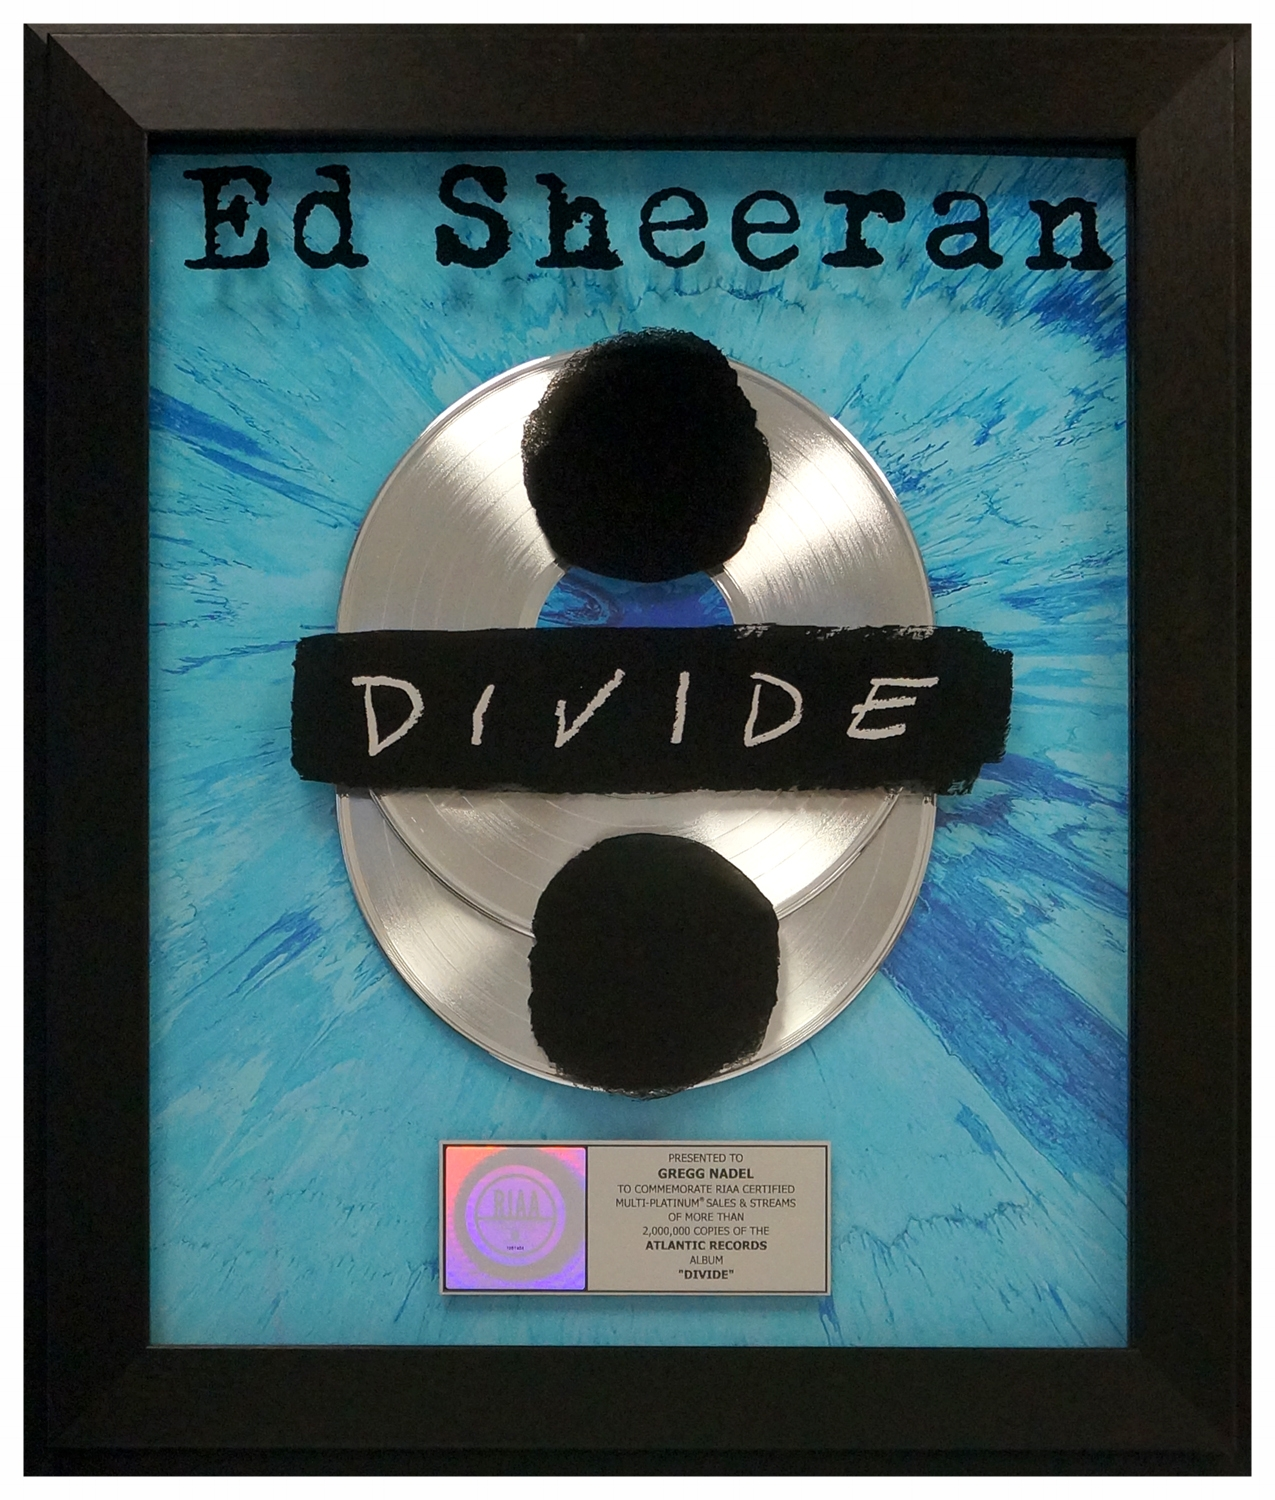 Ed Sheeran DIVIDE plaque.jpg